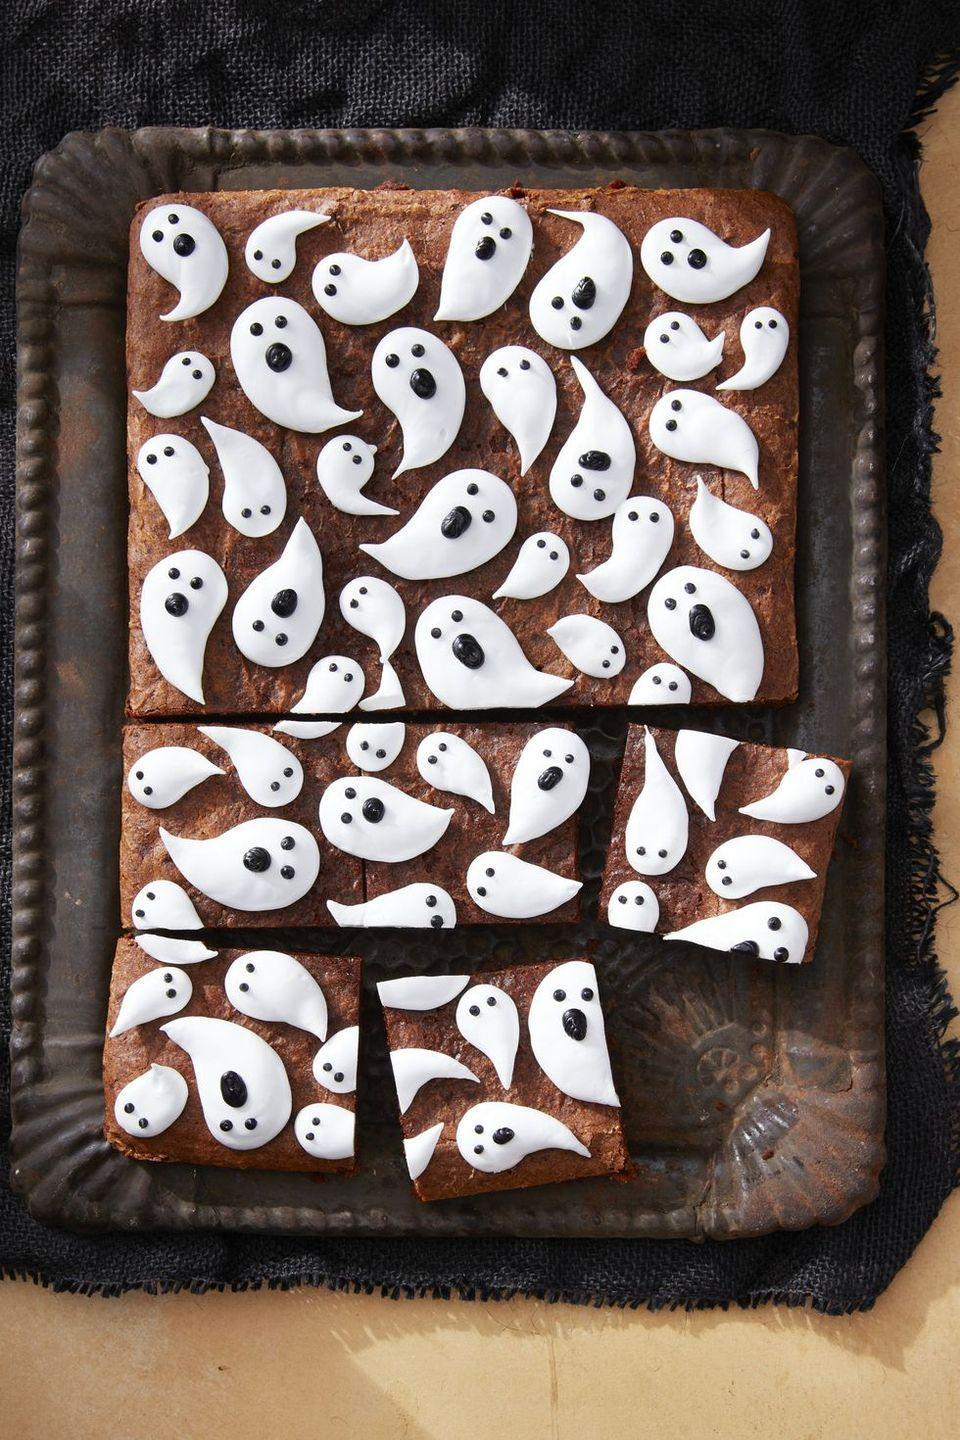 """<p>They may be ghostly, but they're downright adorable too. These brownies might even elicit a few """"awws"""" from your party guests!</p><p><strong><a href=""""https://www.countryliving.com/food-drinks/a28943165/marshmallow-ghost-brownies-recipe/"""" rel=""""nofollow noopener"""" target=""""_blank"""" data-ylk=""""slk:Get the recipe"""" class=""""link rapid-noclick-resp"""">Get the recipe</a>.</strong> </p>"""